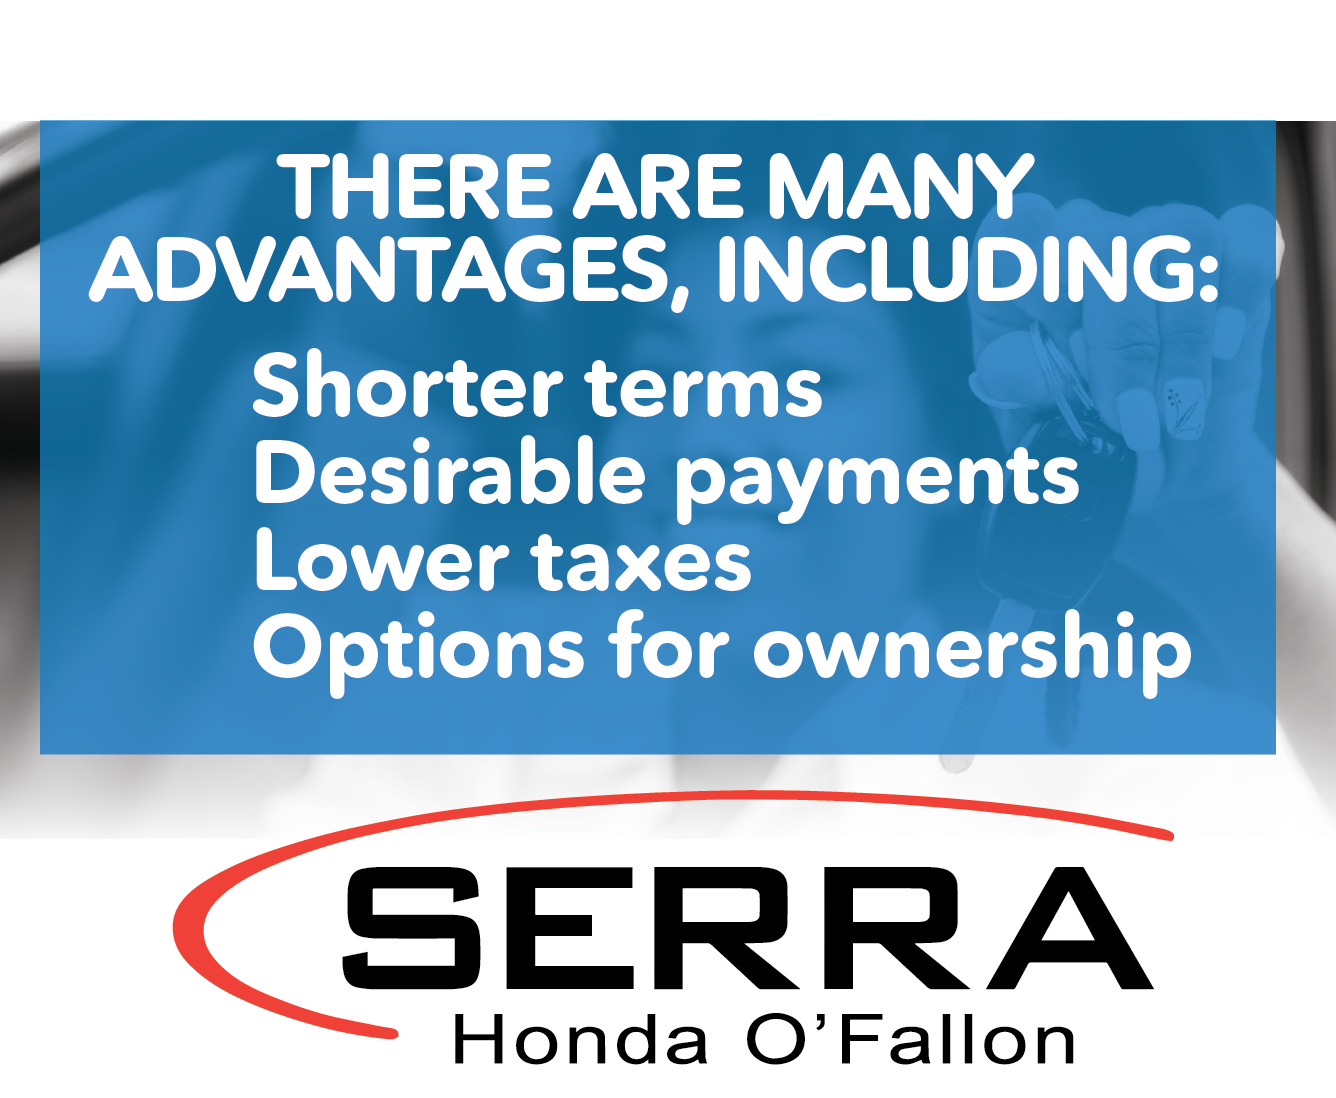 Honda Lease Offers Ou0027Fallon, IL